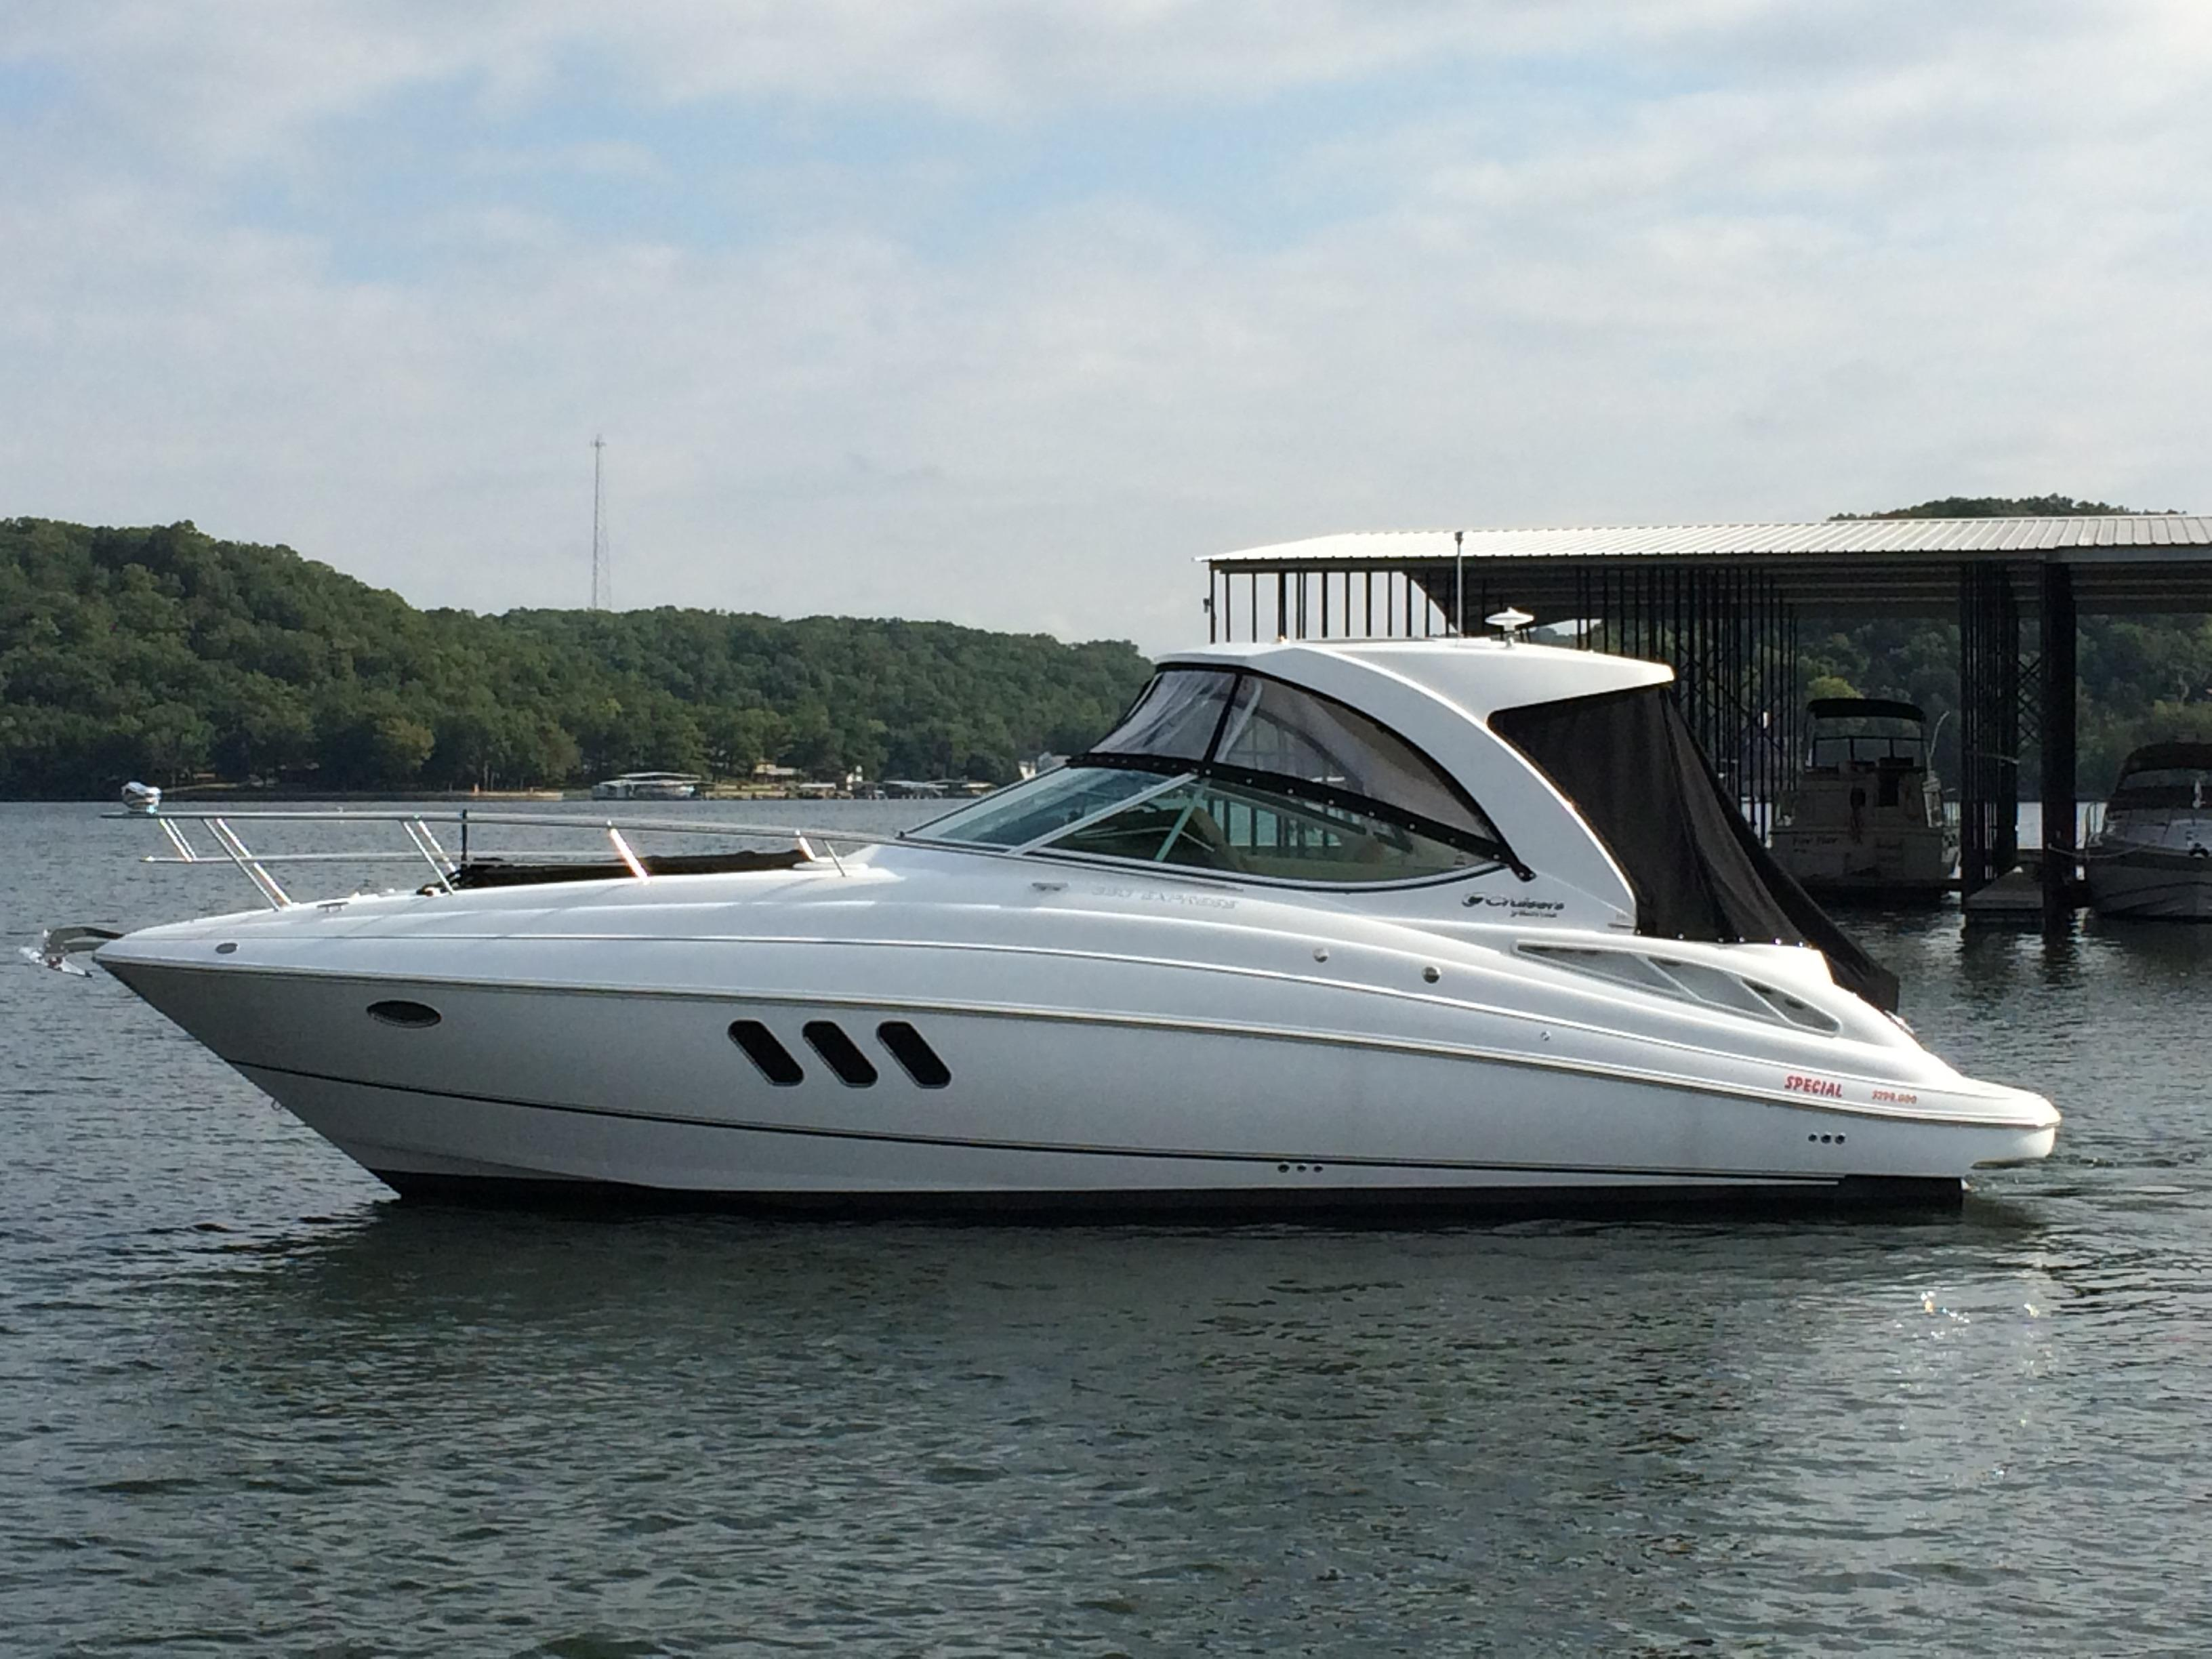 Lake Ozark (MO) United States  city images : 2015 Cruisers Yachts 350 Express Power Boat For Sale www.yachtworld ...